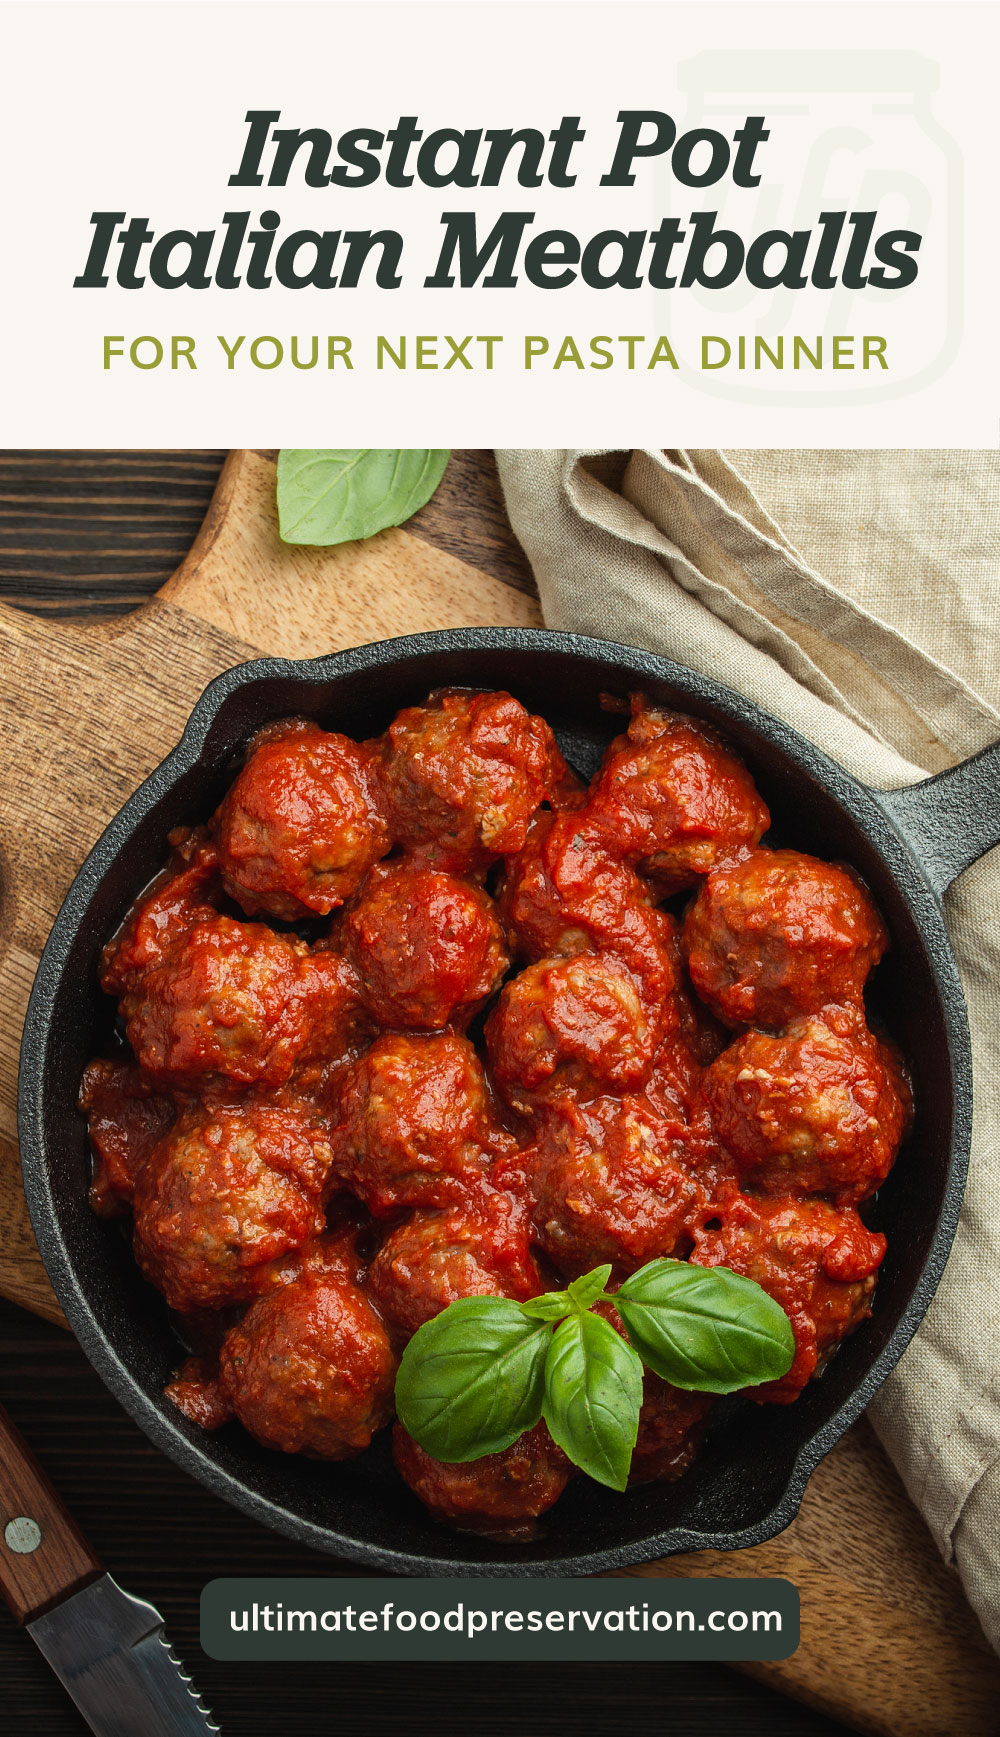 """Text area which says """"Instant Pot Italian Meatballs For Your Next Pasta Dinner """" next to a top view of italian meatballs in a pan followed by another text area which says ultimatefoodpreservation.com"""